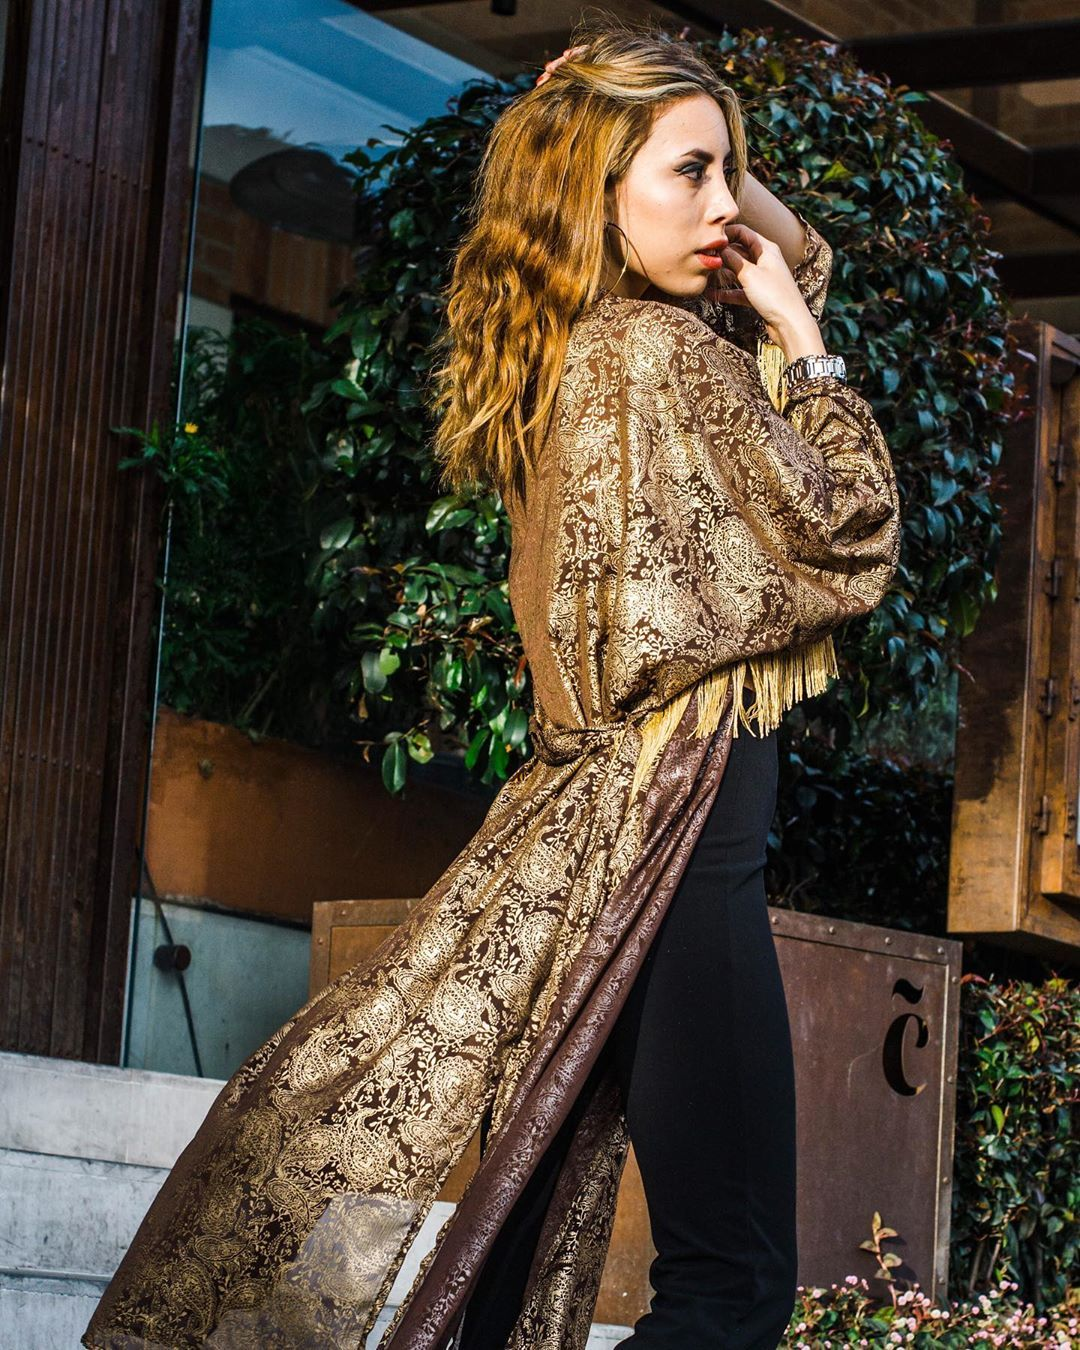 Gold Kino Ph Photos Byjuanma Model Pauumor Fashion Outfit Outfitoftheday Luxury Girl Fashiongirl Black Insta Outfits Fashion Outfit Inspirations